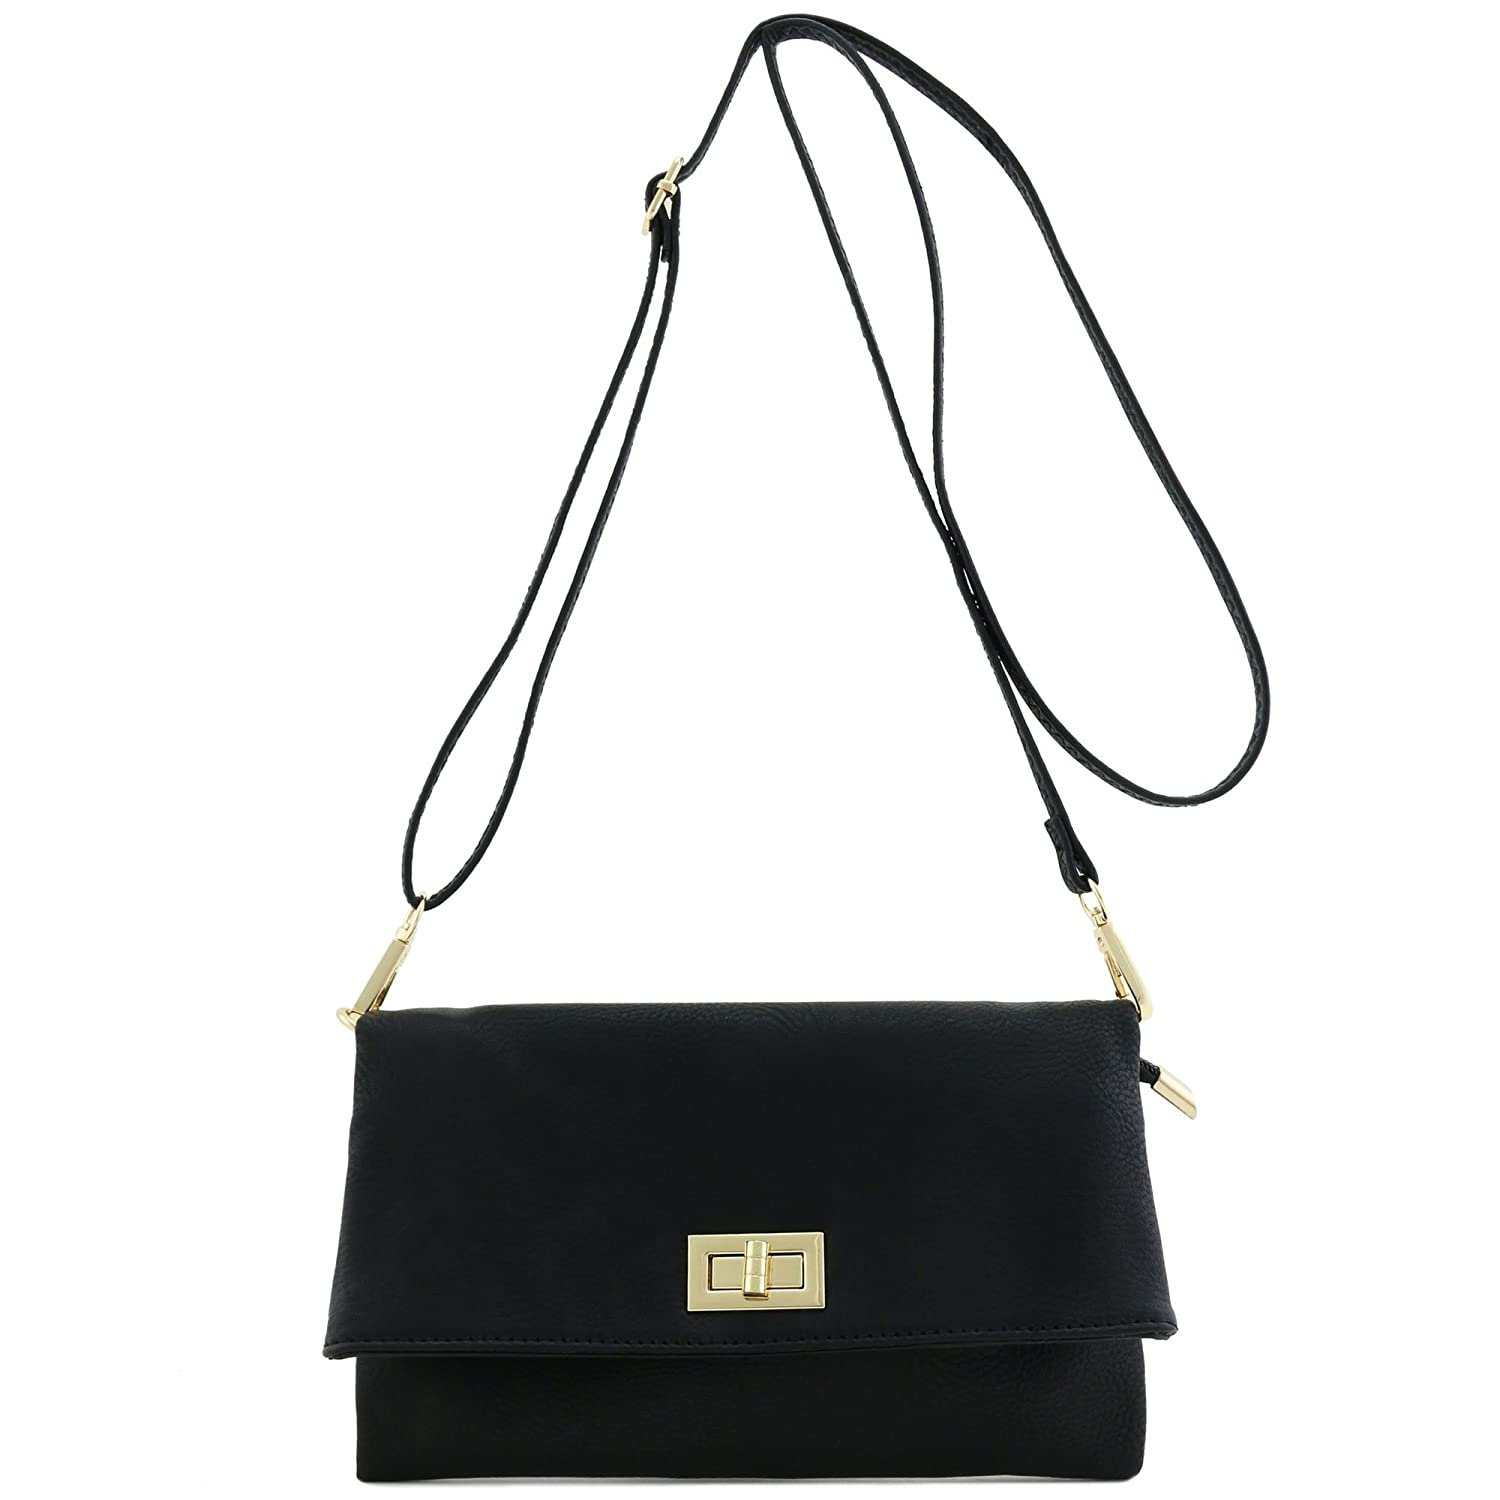 Black Double Compartment Turnlock Envelope Clutch Crossbody Bag